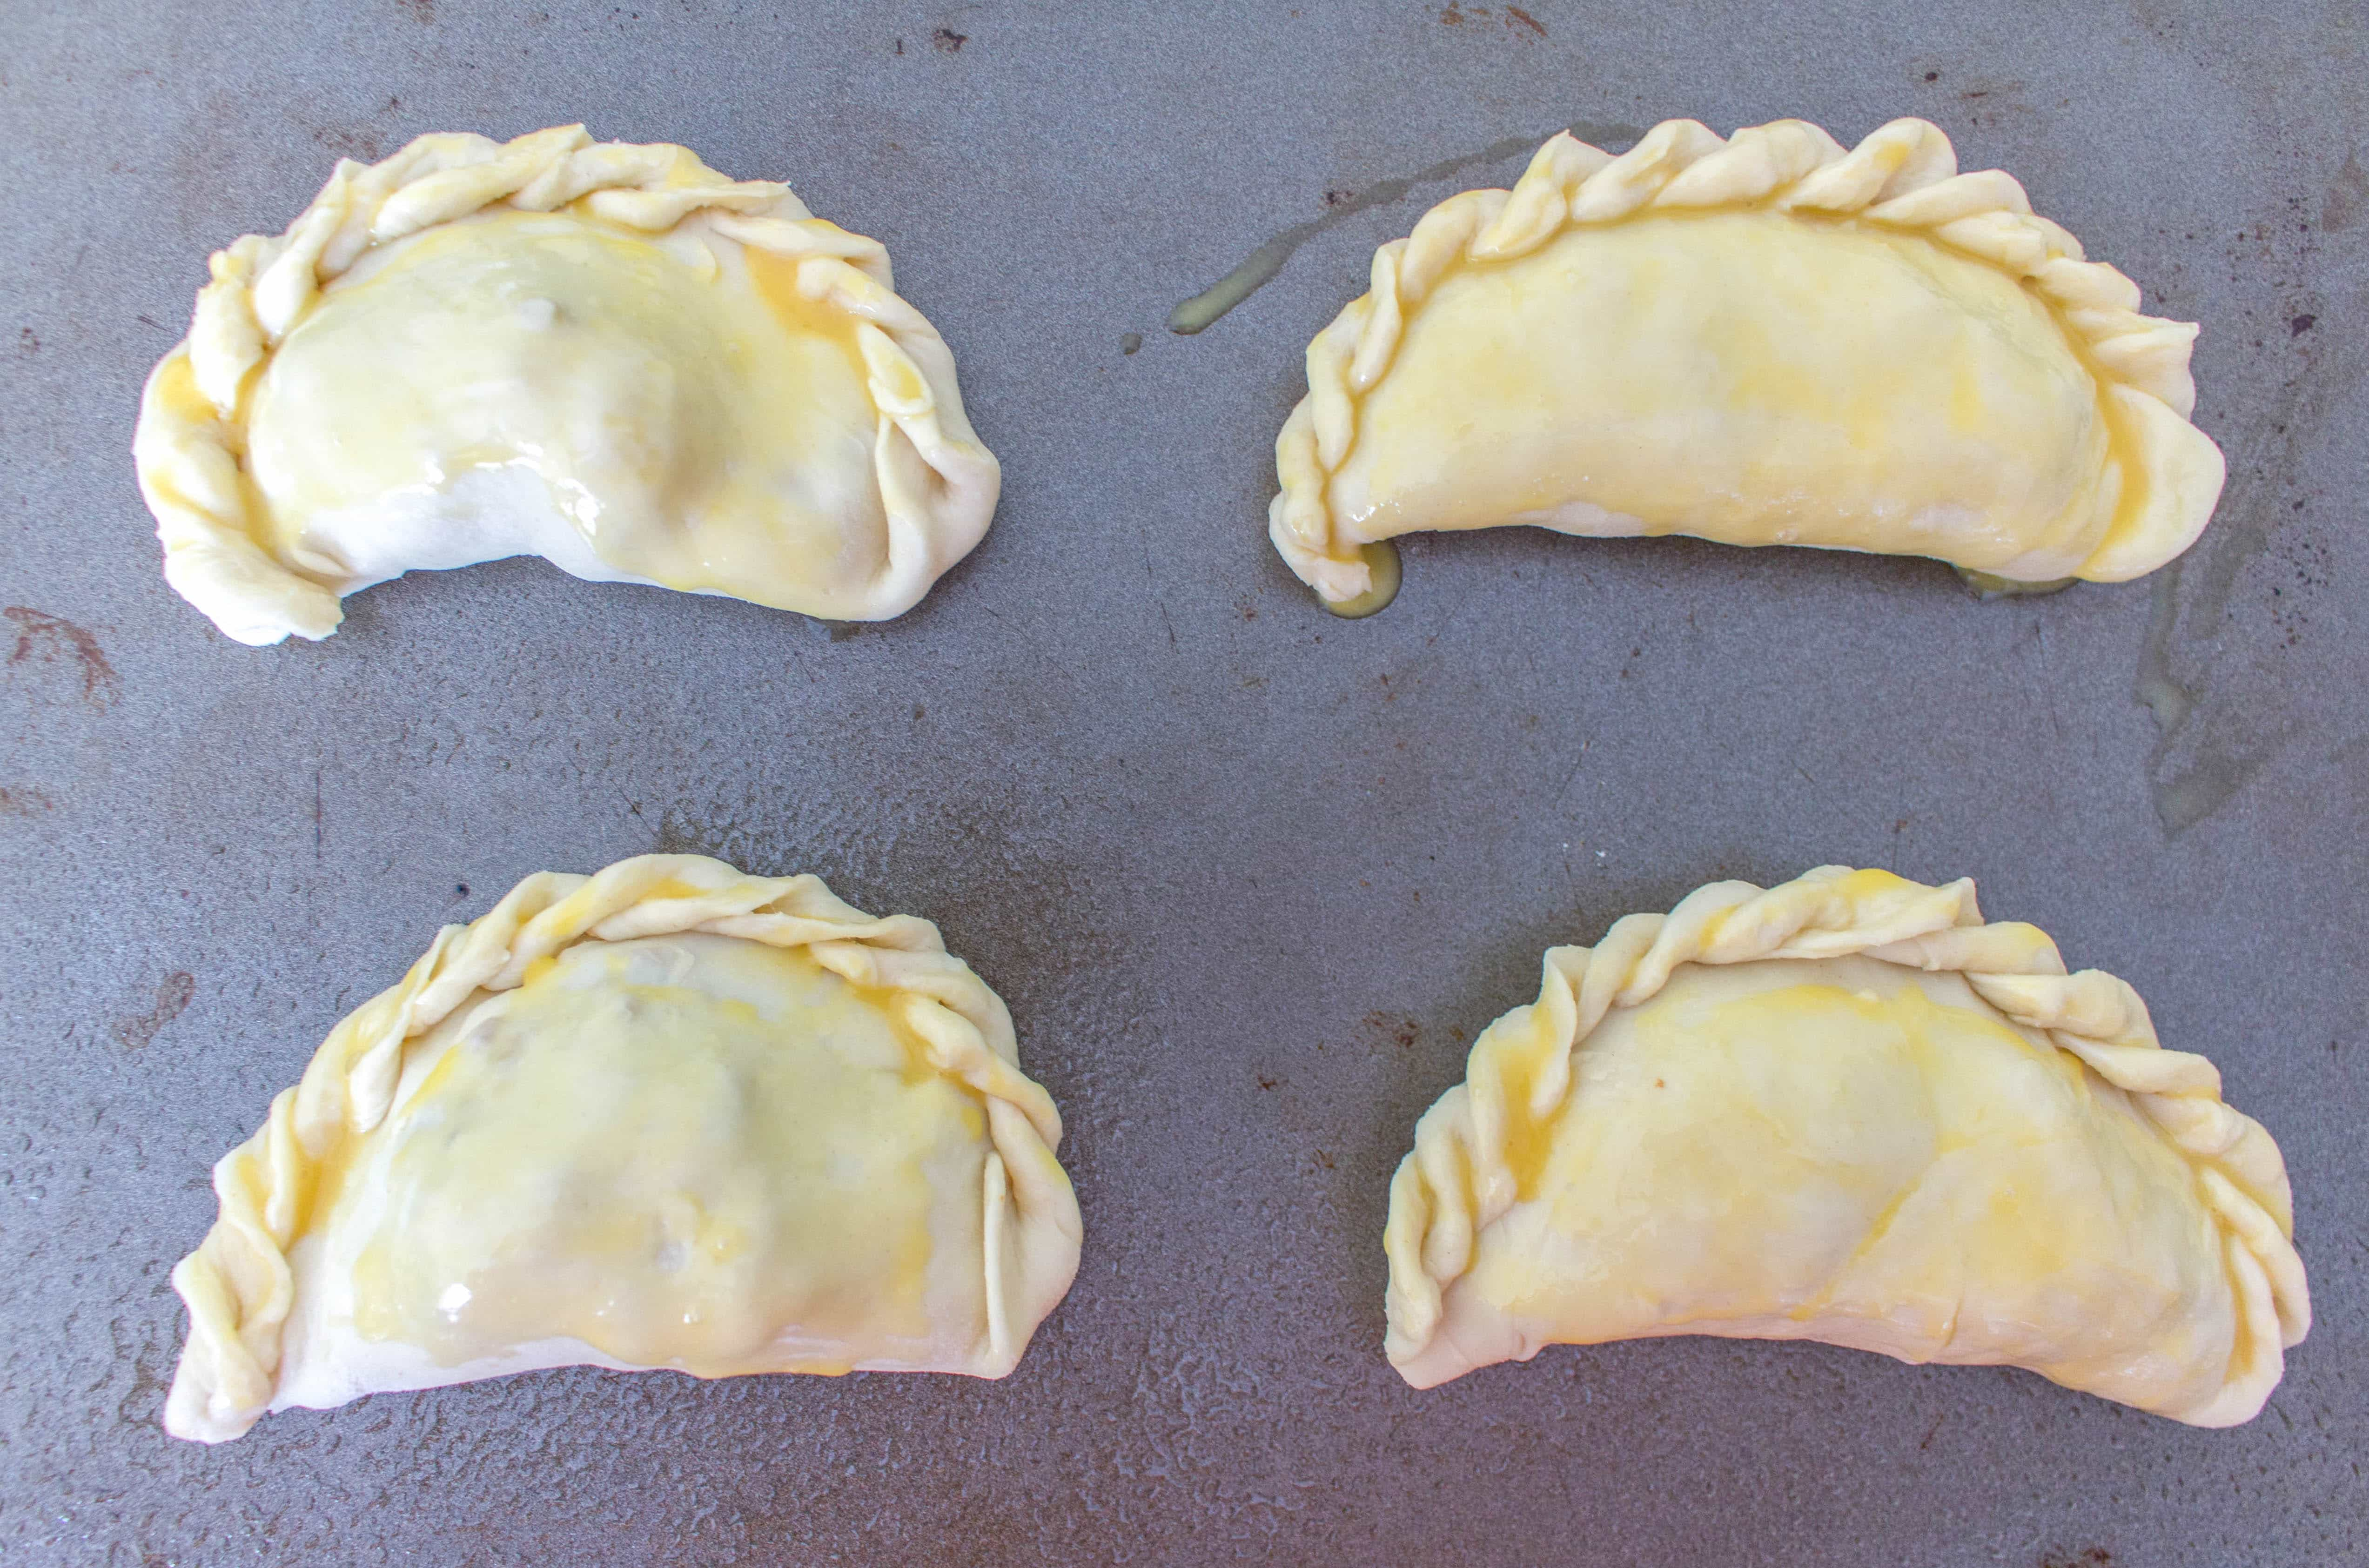 Delicious, flakey, and stuffed full of beef, these freezer friendly beef empanadas are the perfect snack! Prep these freezer friendly beef empanadas ahead of time, freeze them, and then pop them into the oven whenever you're ready to eat them!